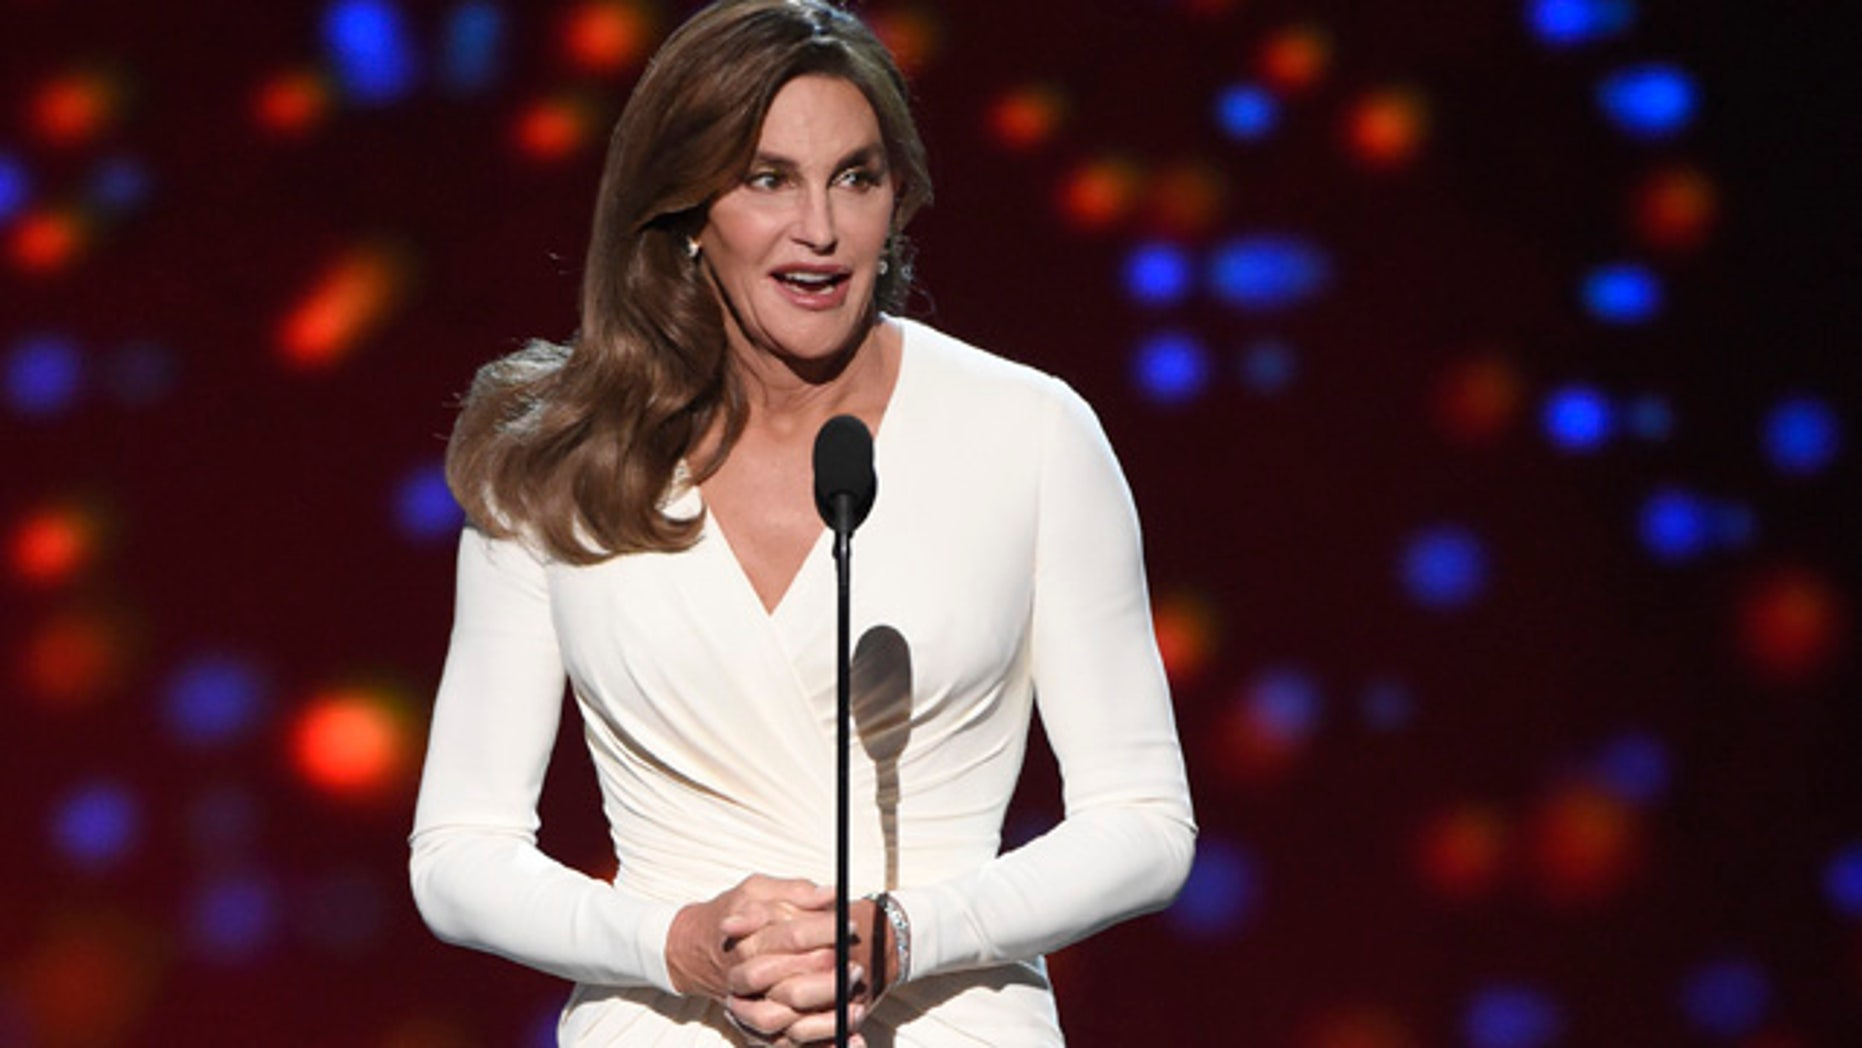 July 15, 2015: Caitlyn Jenner accepts the Arthur Ashe award for courage at the ESPY Awards at the Microsoft Theater in Los Angeles. (Photo by Chris Pizzello/Invision/AP)